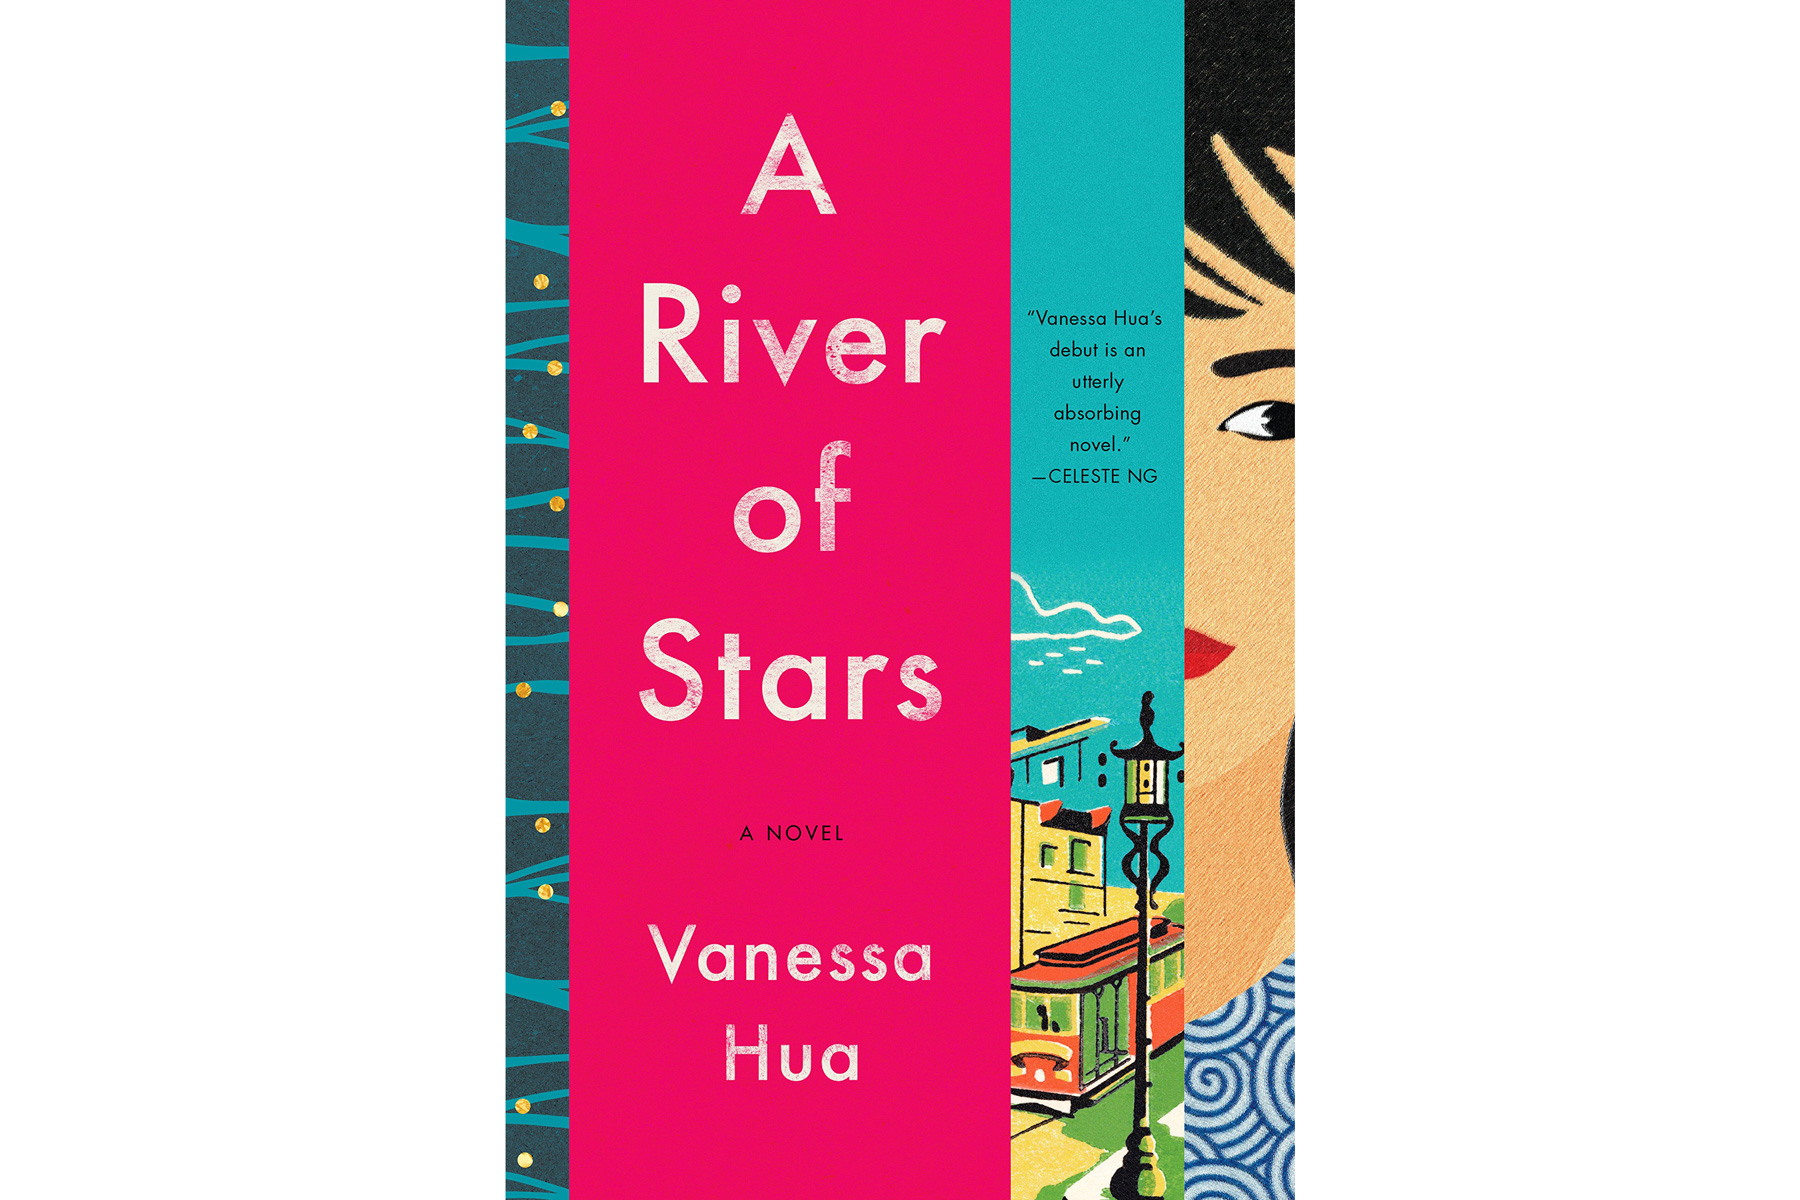 The best books of 2018 so far real simple best books 2018 a river of stars by vanessa hua fandeluxe Gallery